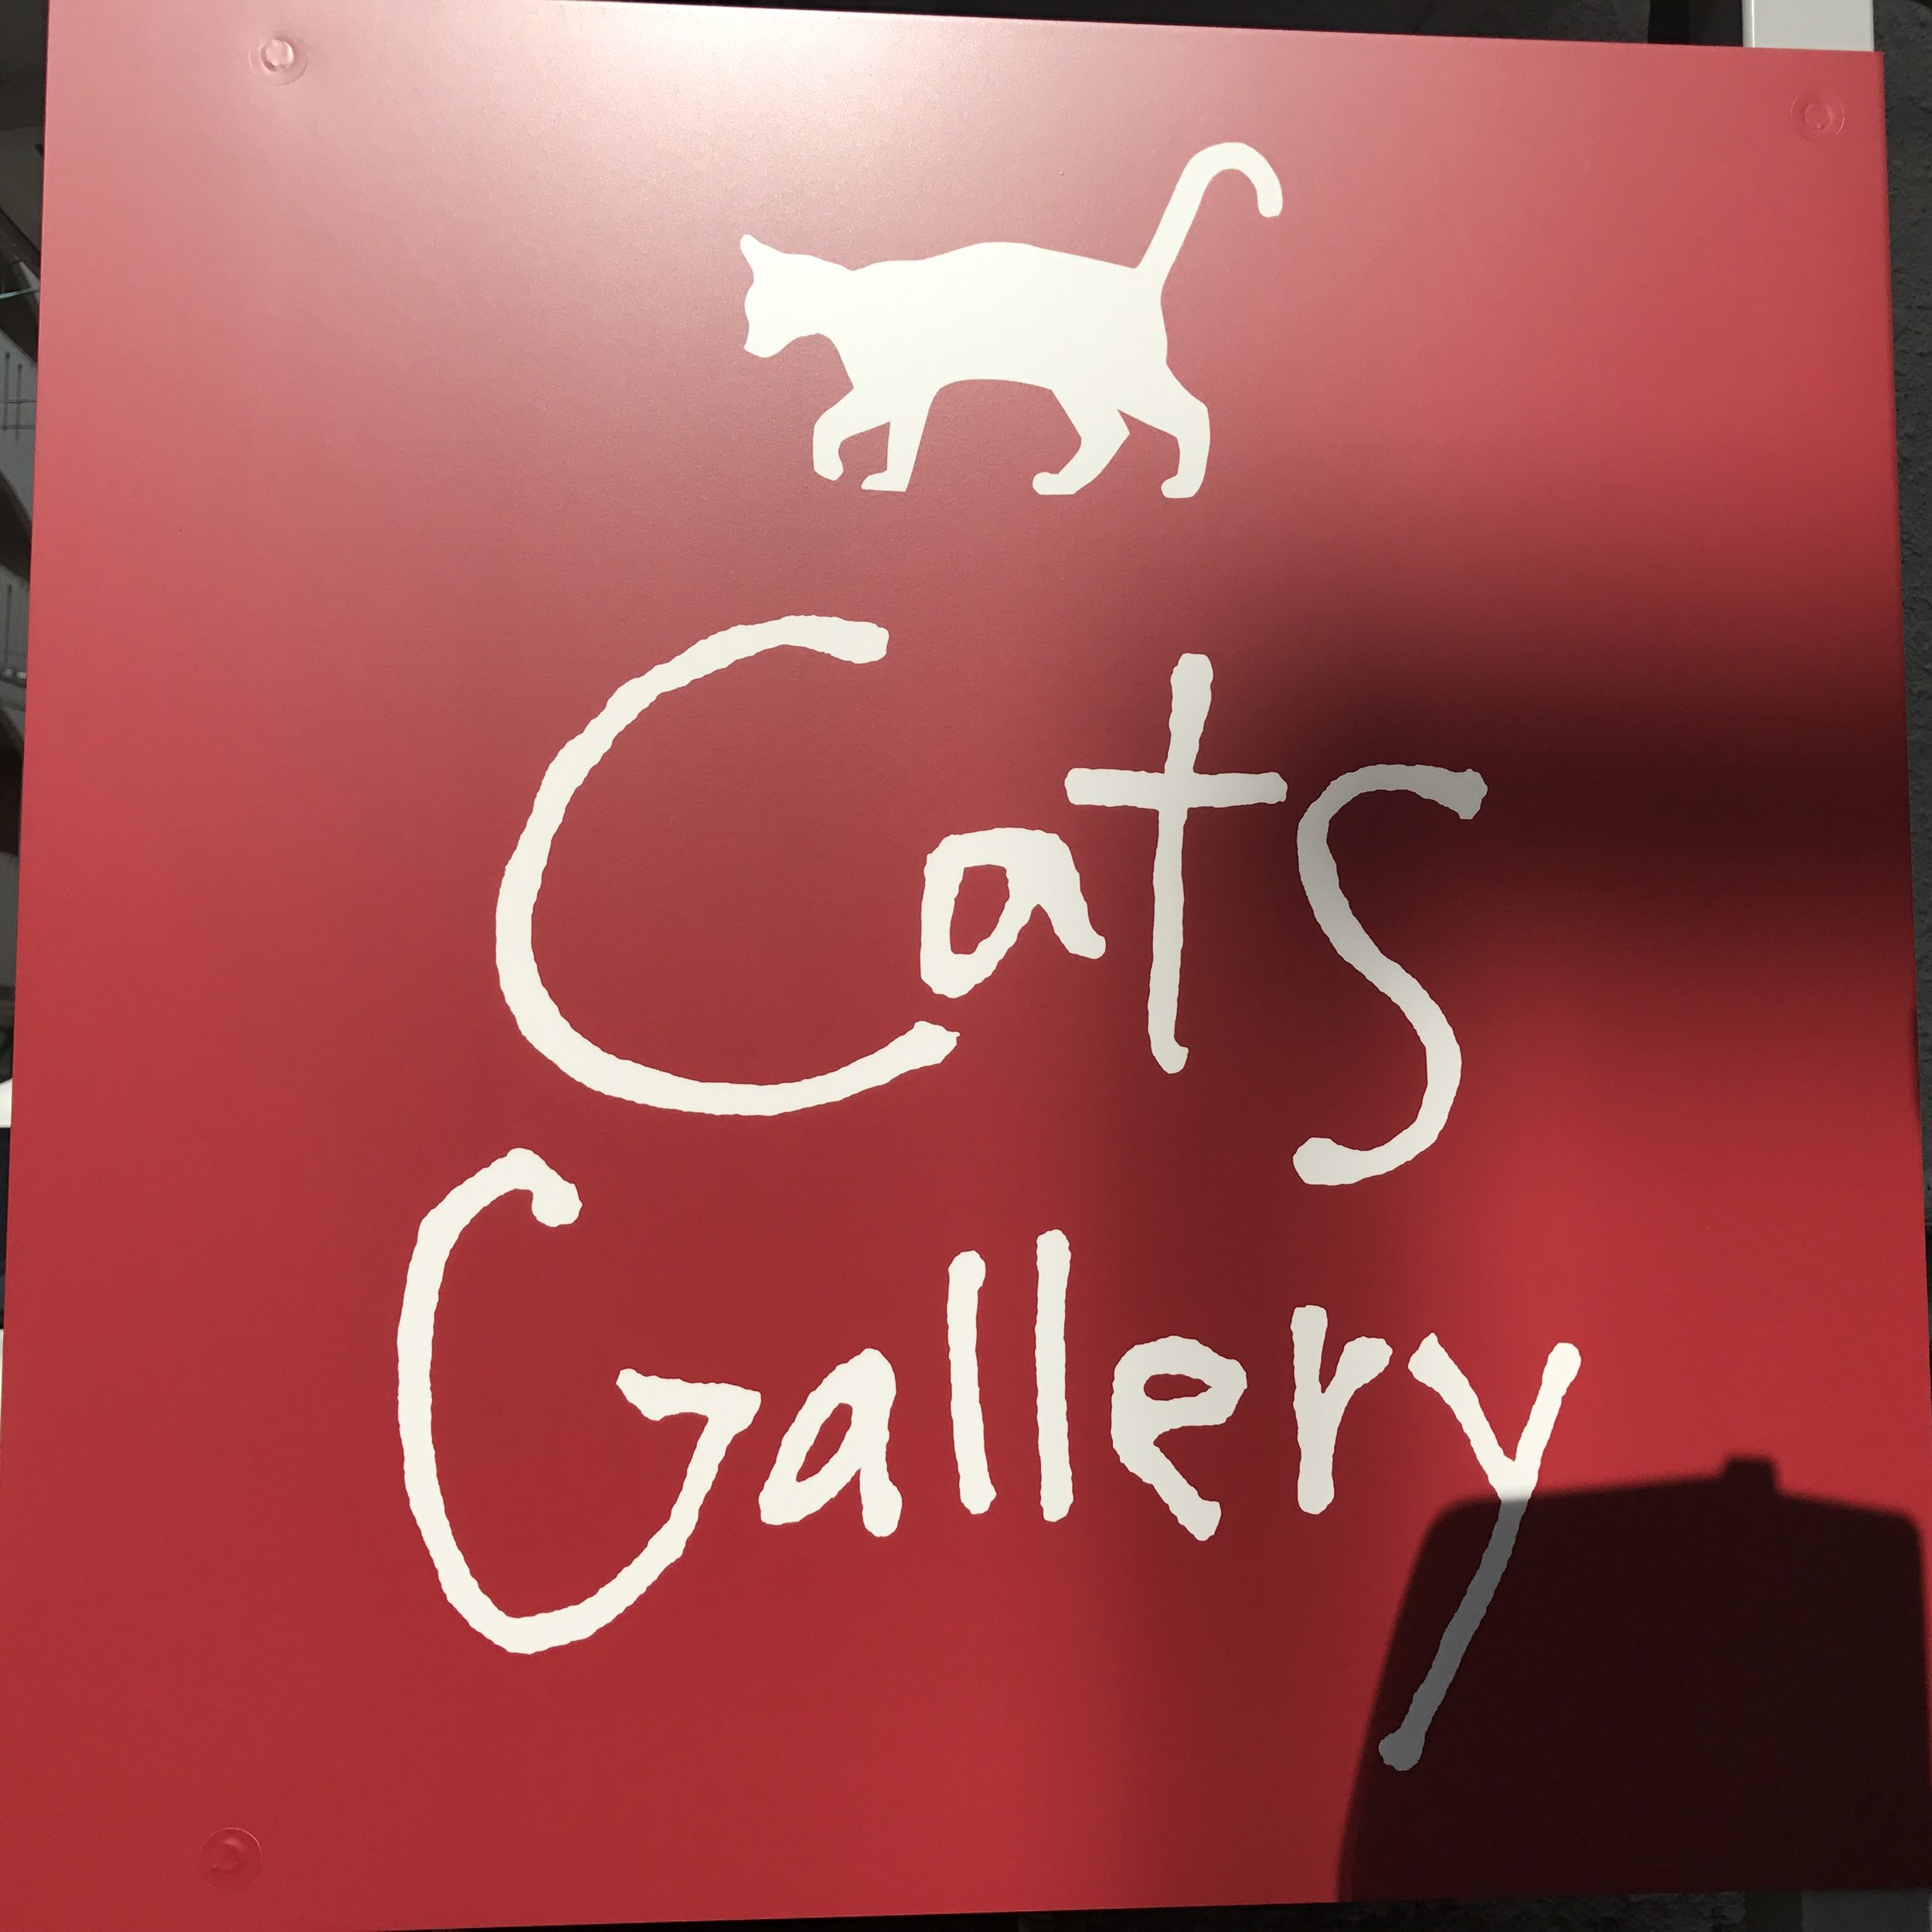 Cats Gallery   Nagoya, Japan